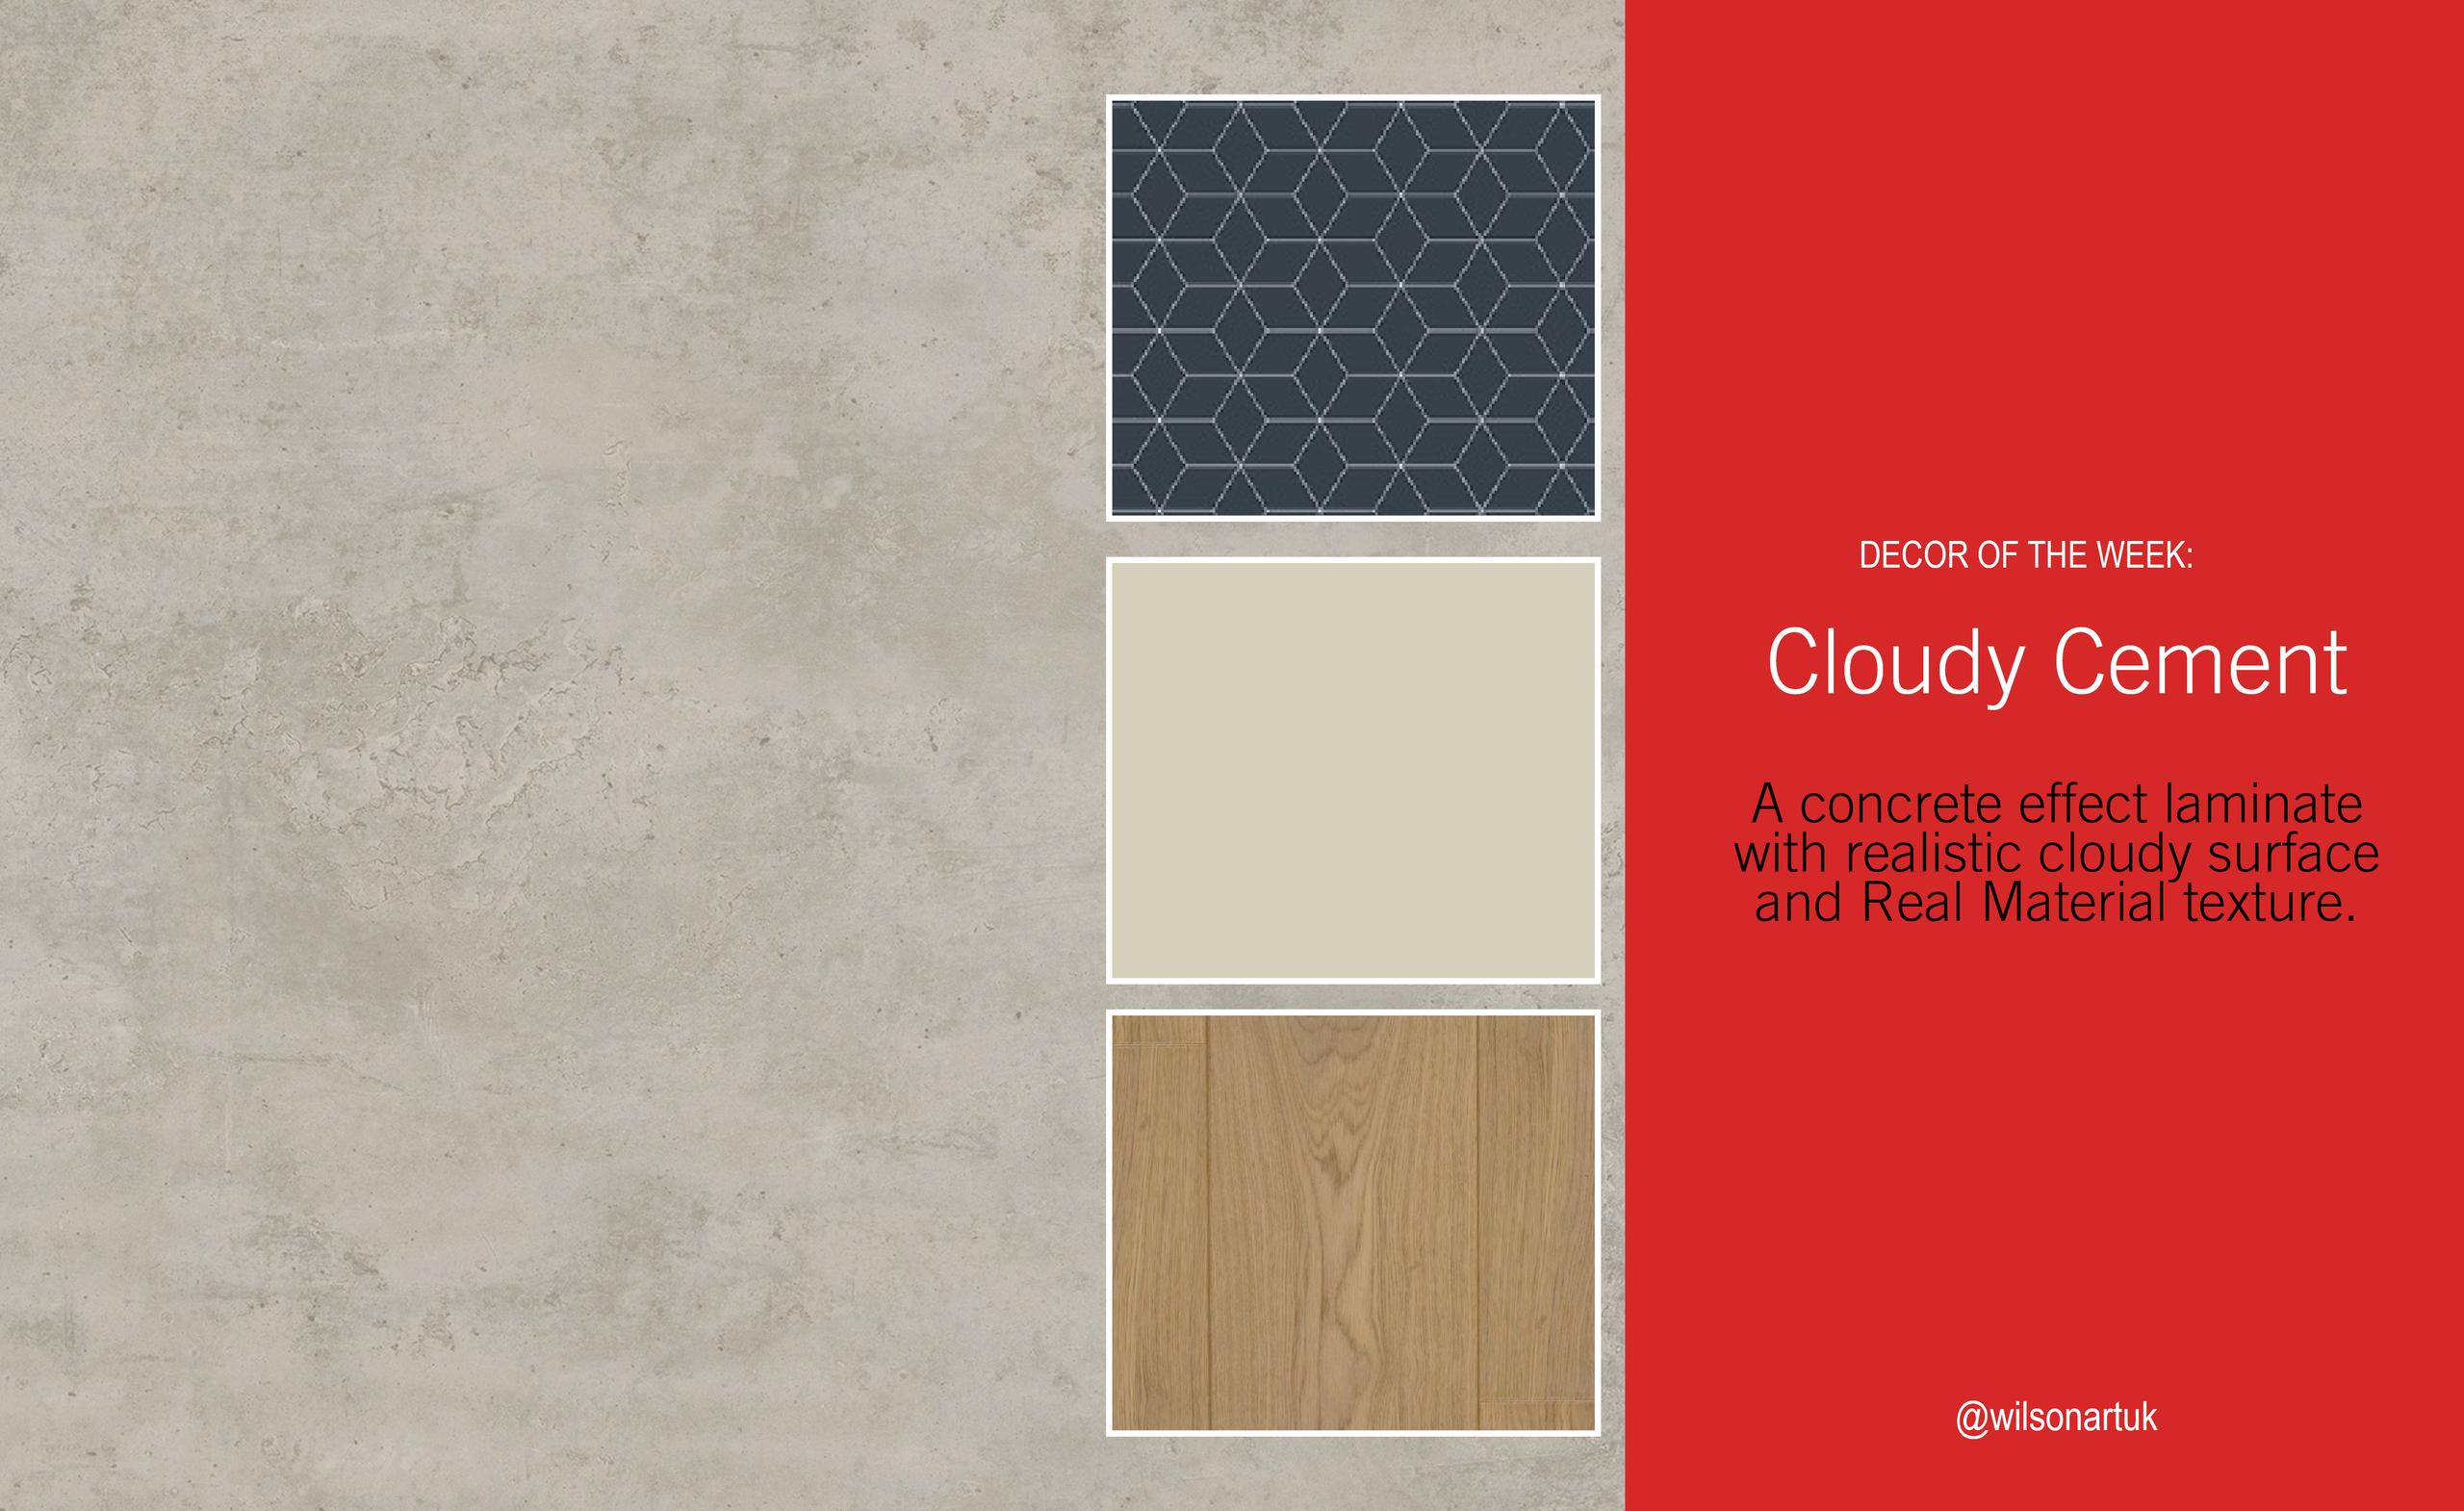 Decor of the Week: Cloudy Cement